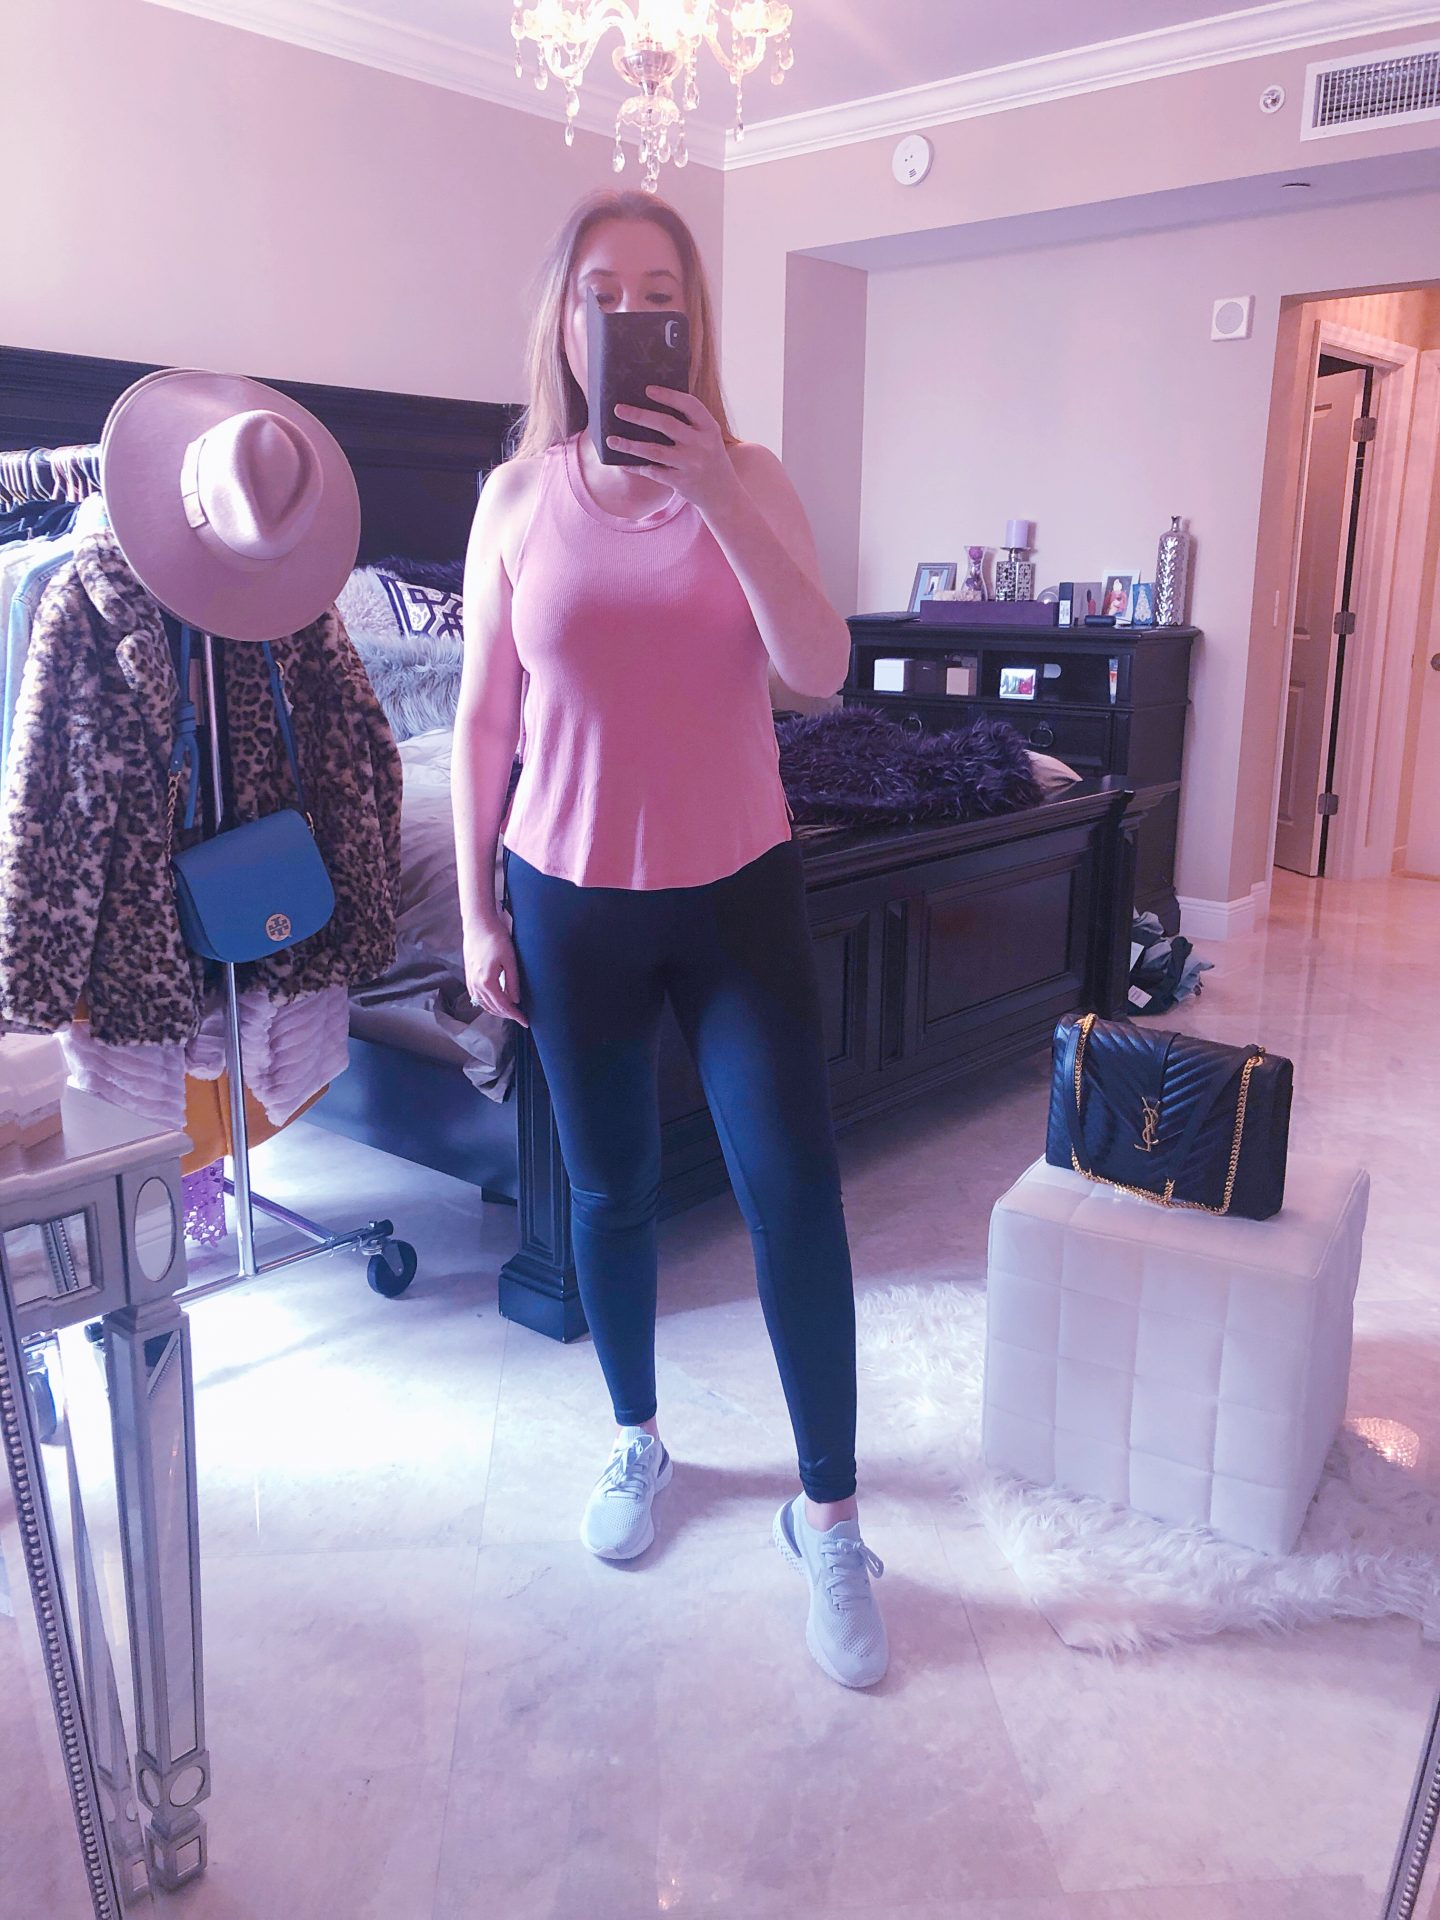 Nordstrom Anniversary Sale Athleisure, alo shine leggings, zella pink top, adidas sneakers